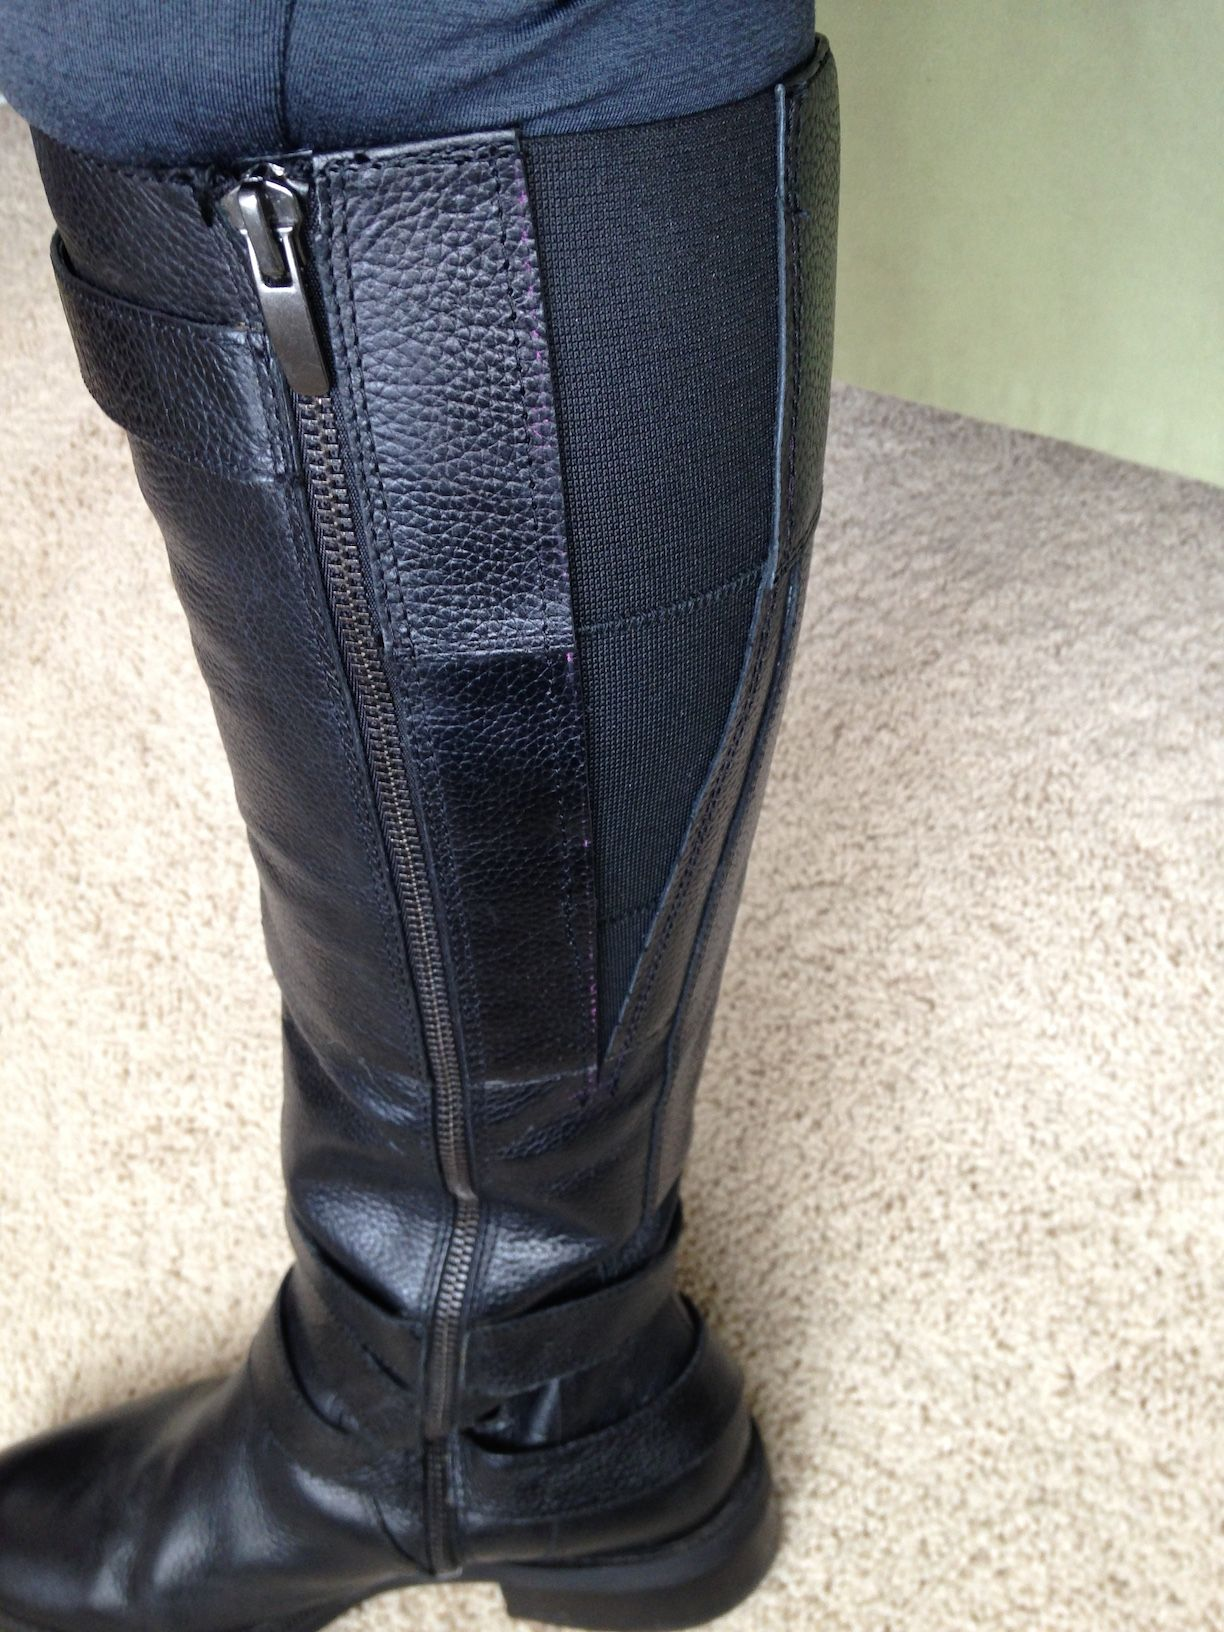 Add gusset to boots | Boots diy, Boots, Tights and boots